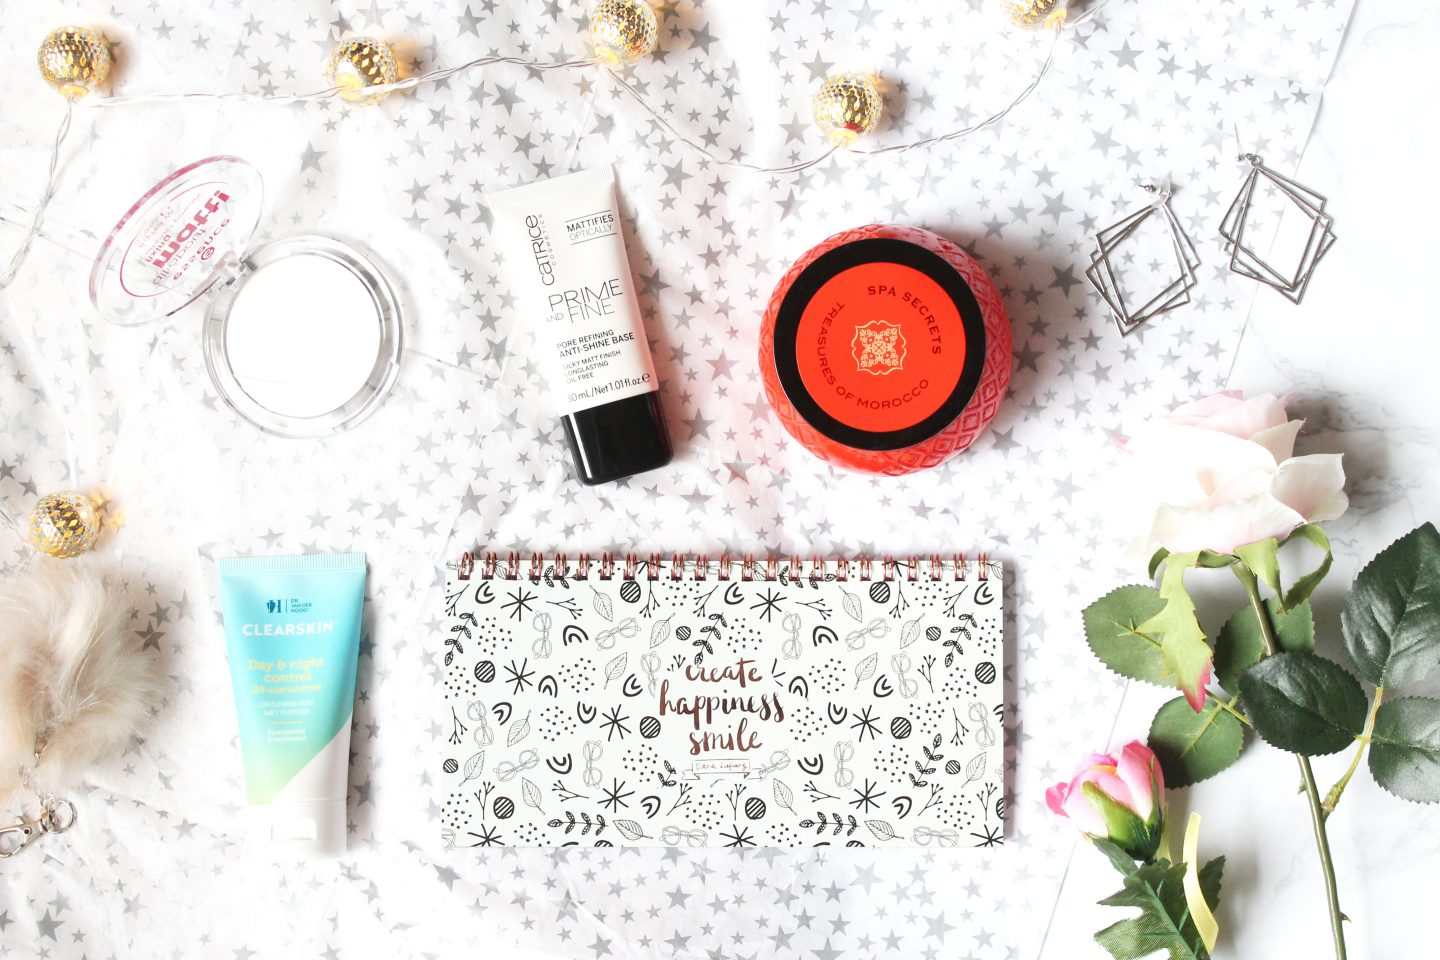 Mini shoplog | Diana Leeflang desk planner & drogisterij goodies!